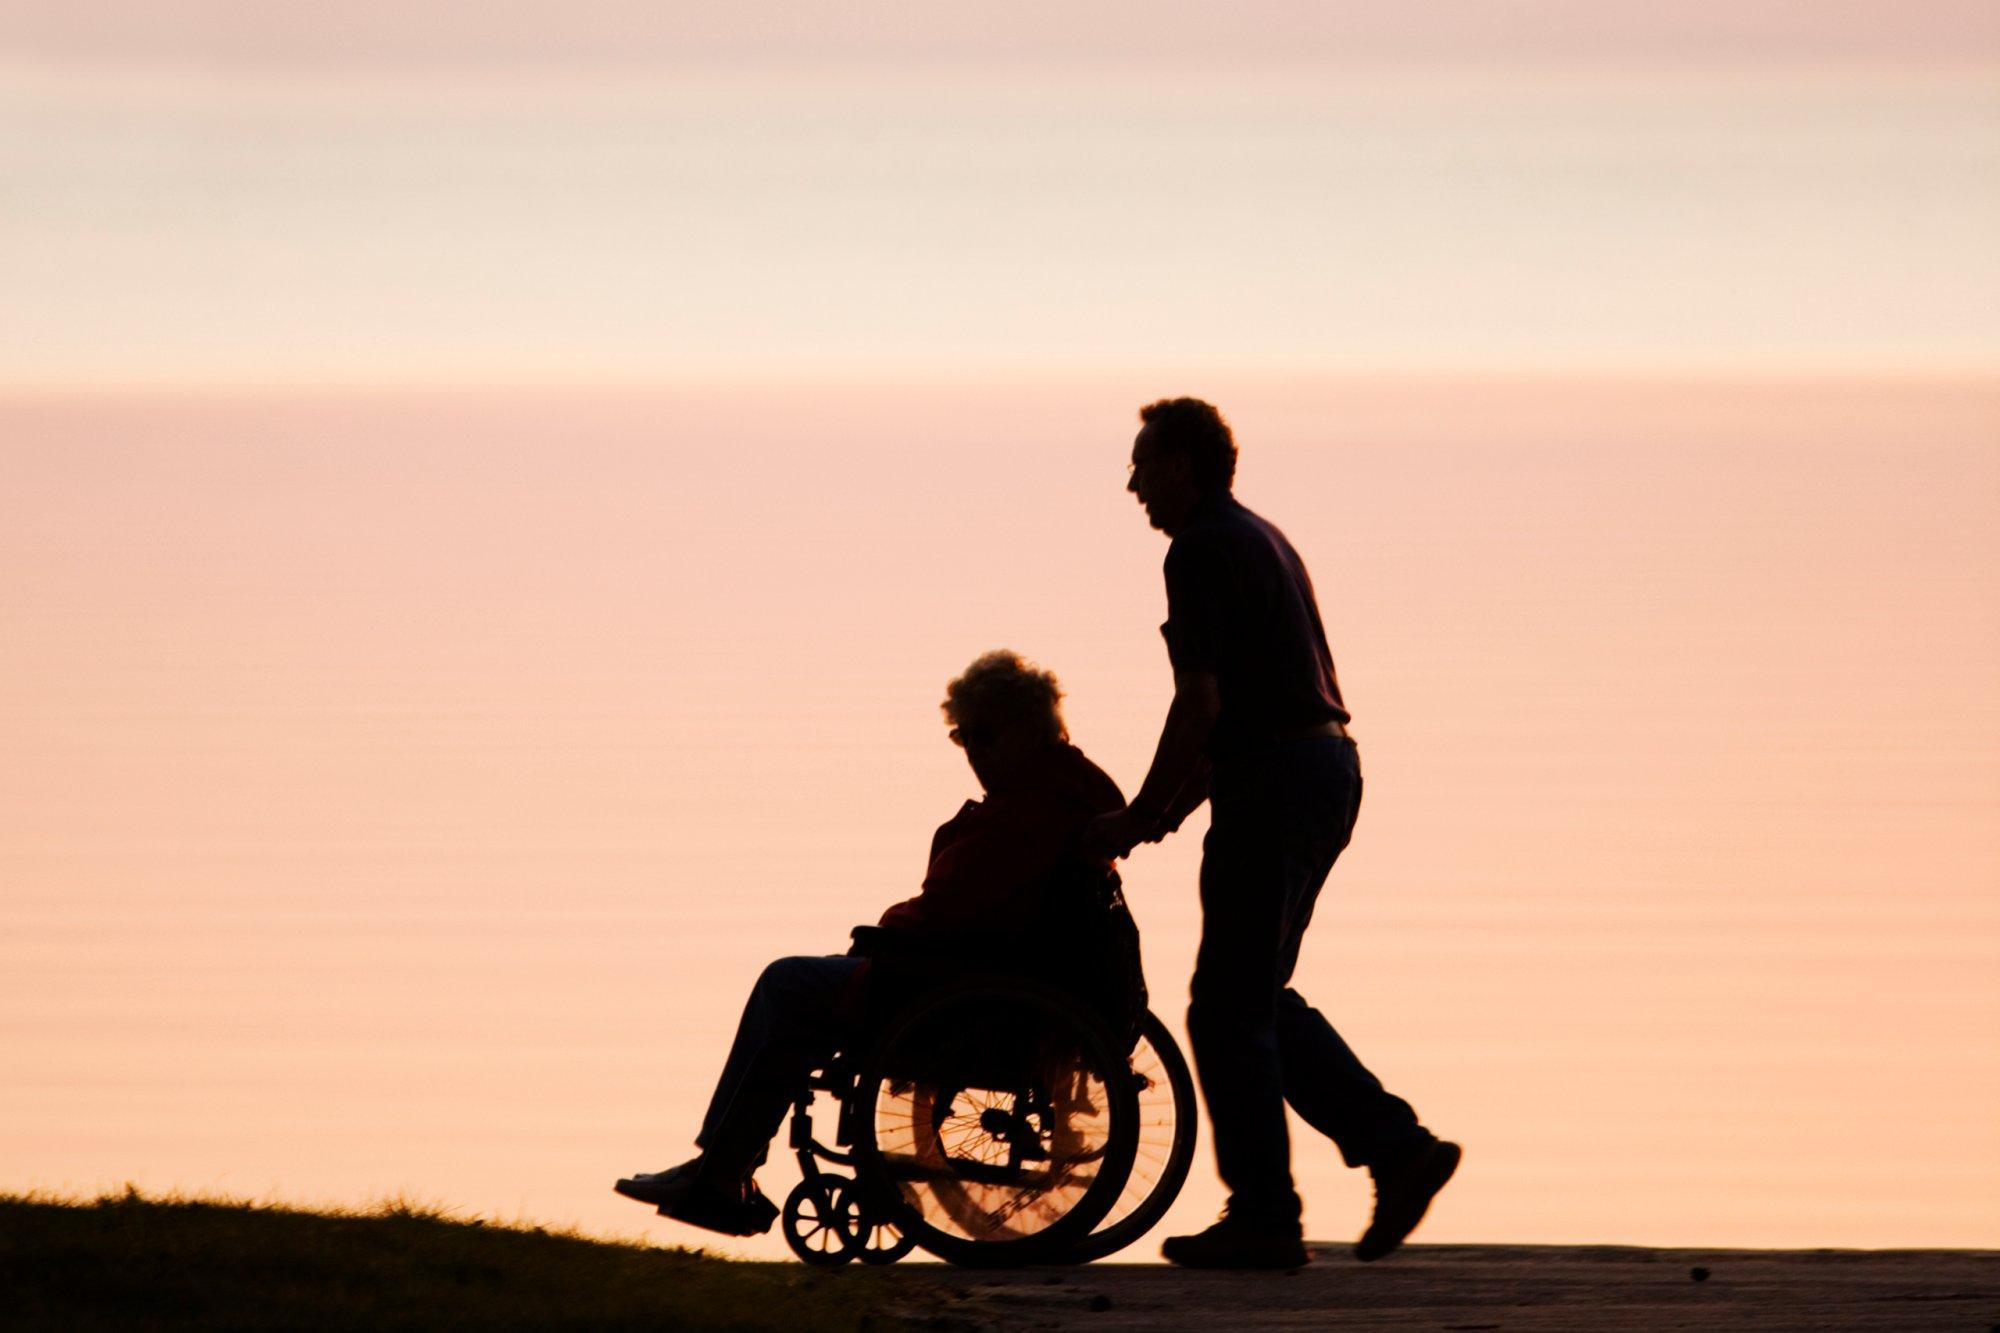 One-fifth of disabled Britons have their rights violated: Report